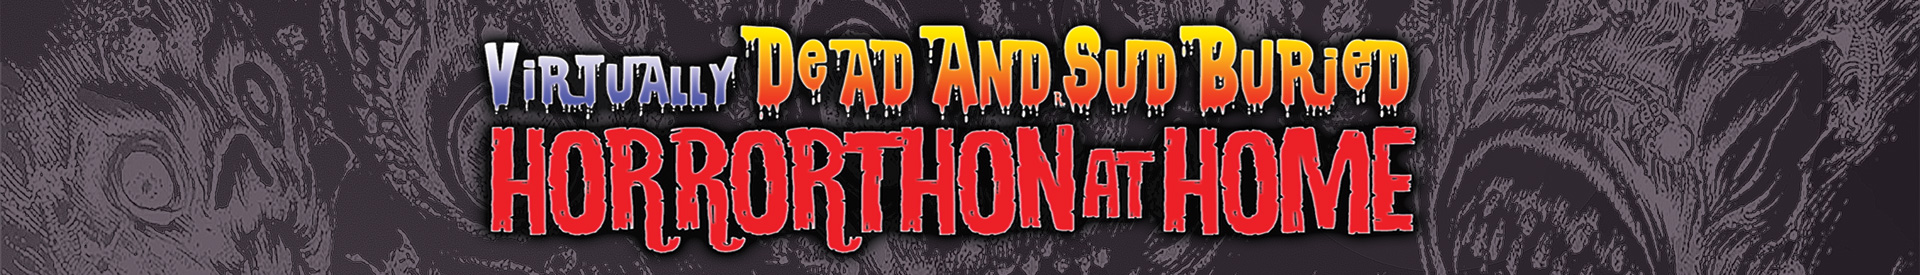 Virtually Dead And SudBuried: Horrorthon At Home